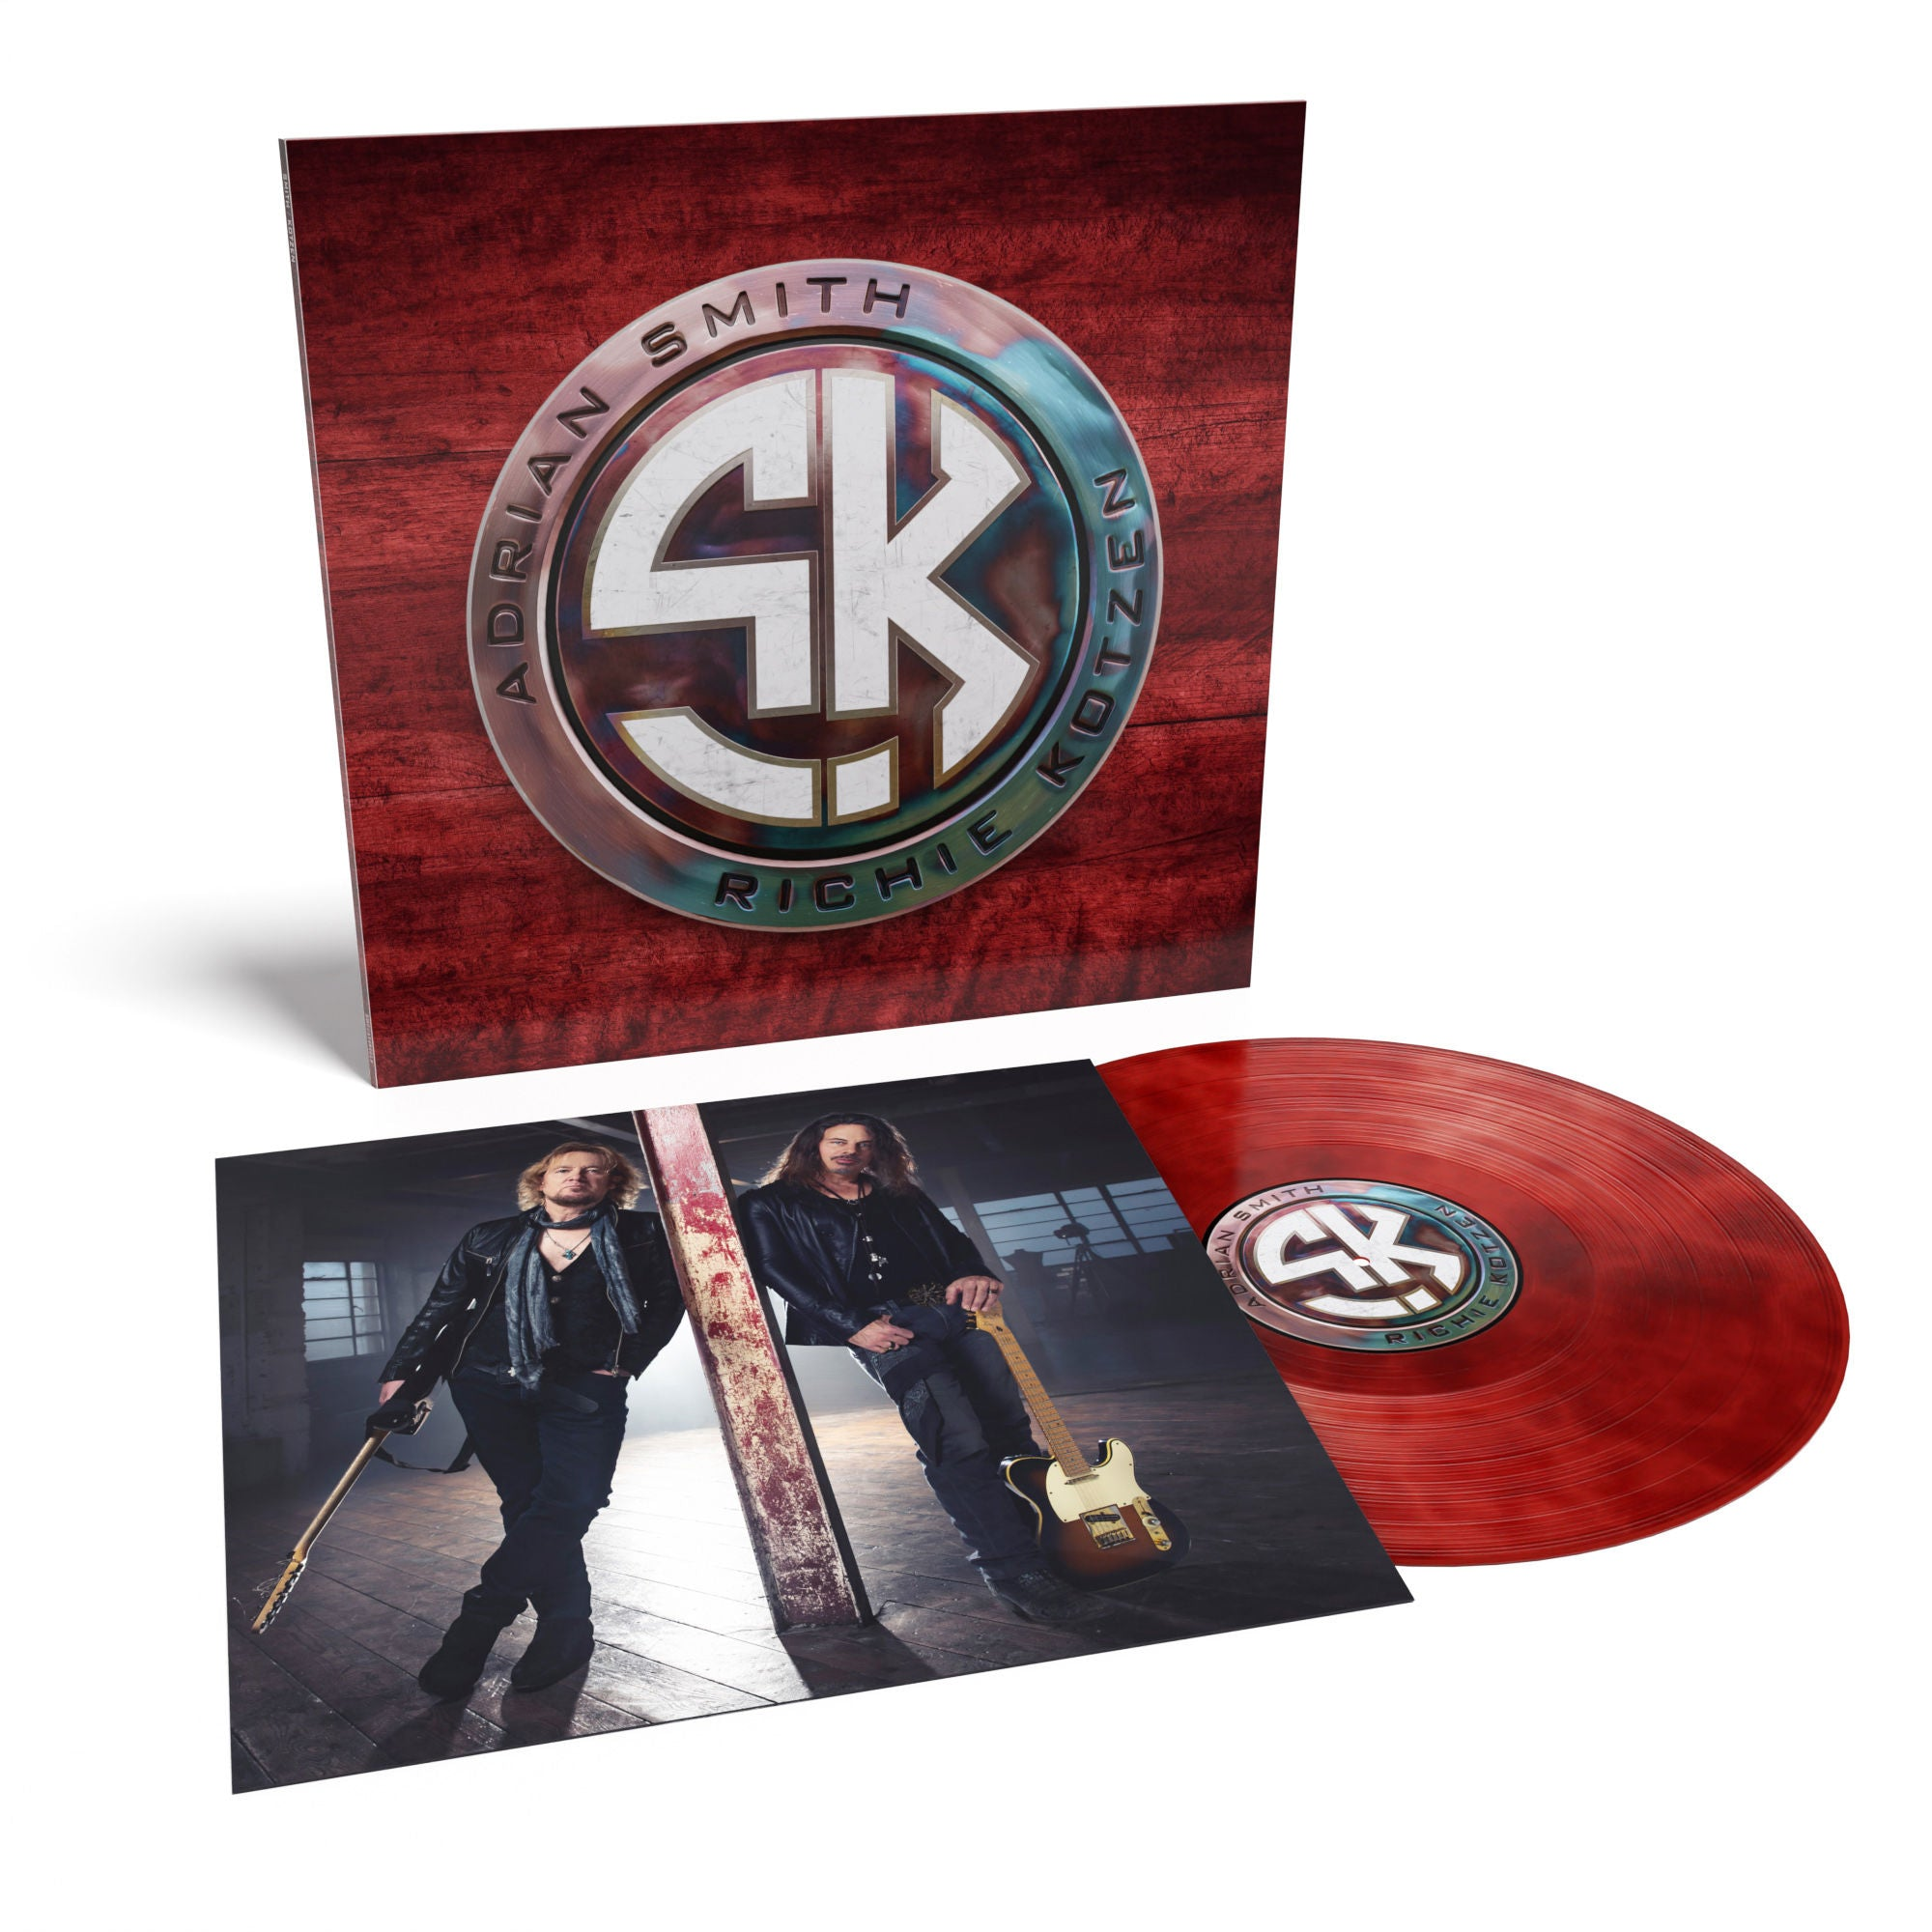 Smith / Kotzen - Smith Kotzen Limited Edition Red & Black Smoke Colour Vinyl Record Album